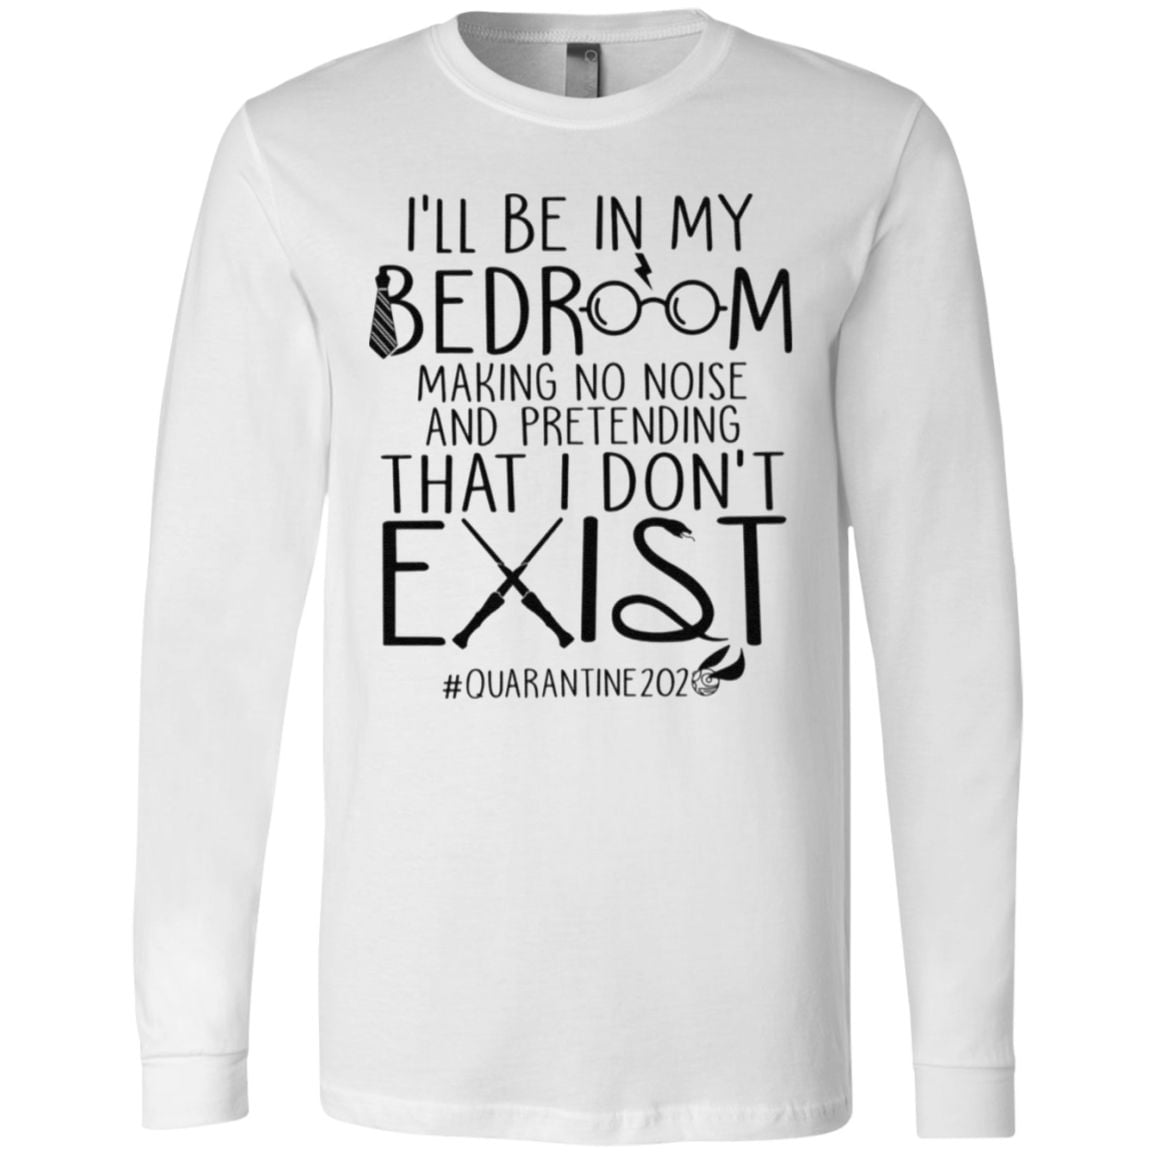 I'll Be In My Bedroom Making No Noise And Pretending That I Don't Exist t shirt